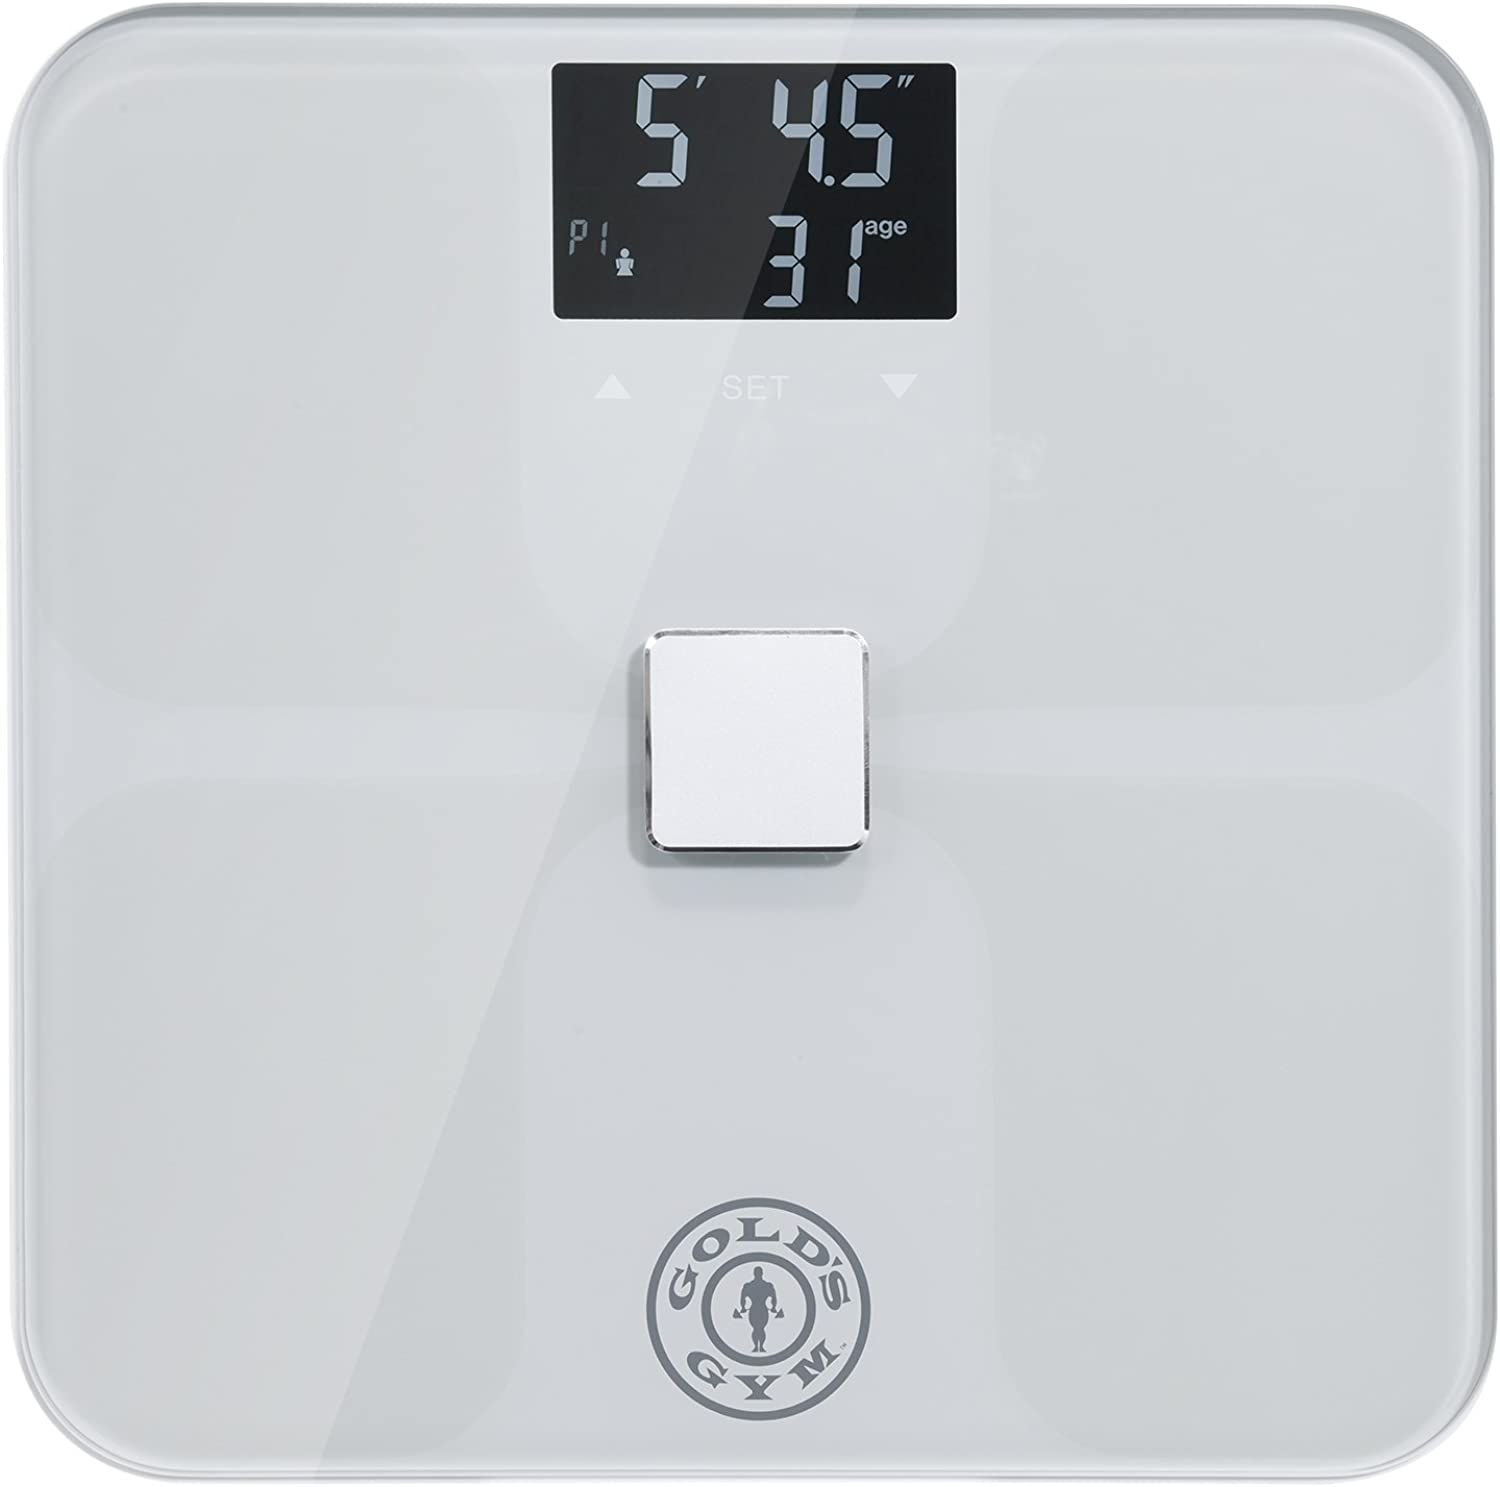 gold's Gym Digital Body Weight Bathroom Scale Measures BMI, Body Fat Water and Muscle Mass, Stepon Technology, Portable, Silver